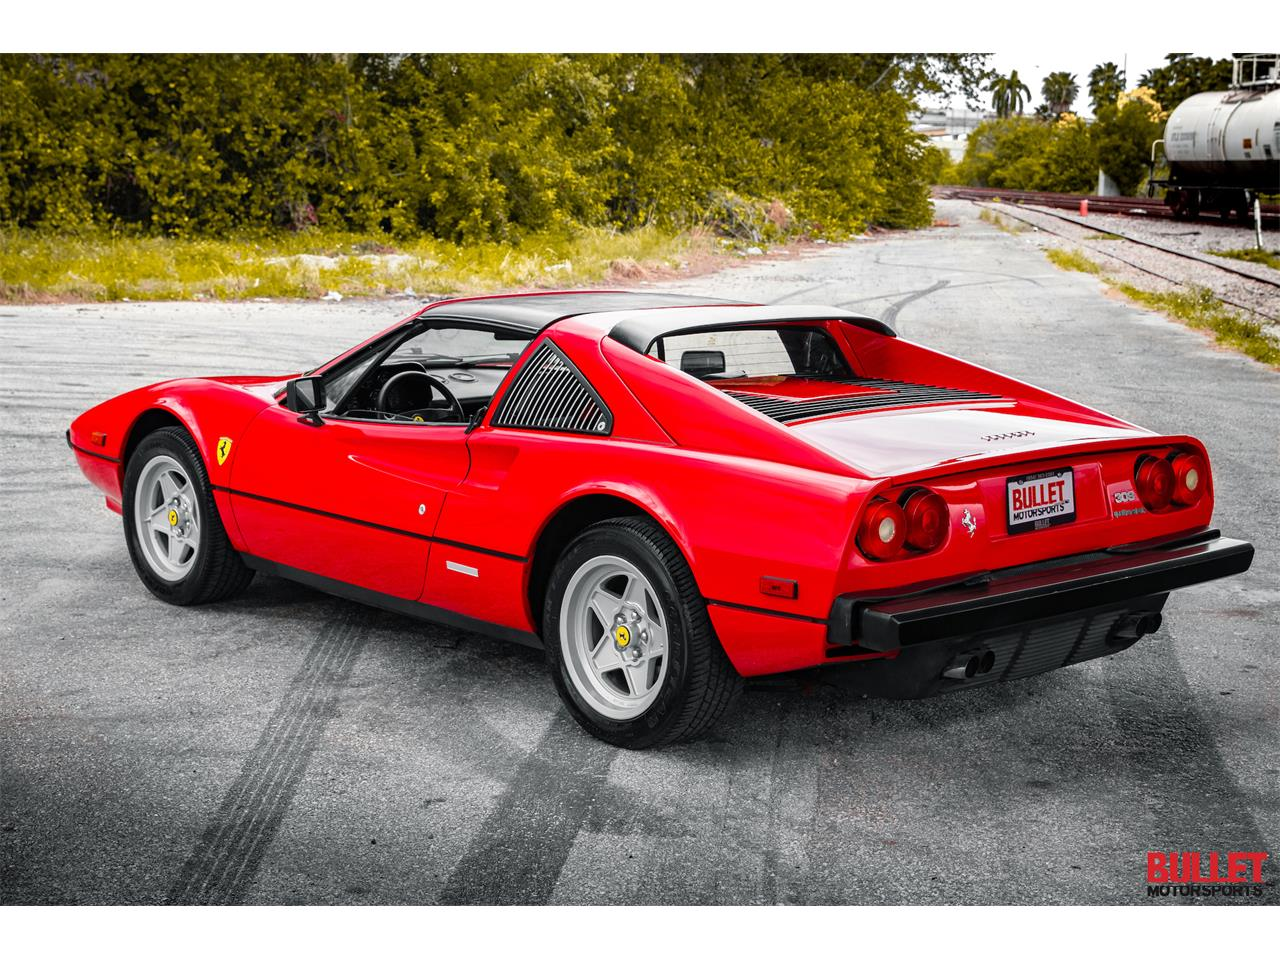 Large Picture of 1985 Ferrari 308 GTS located in Fort Lauderdale Florida - $60,000.00 Offered by Bullet Motorsports Inc - QJ3G